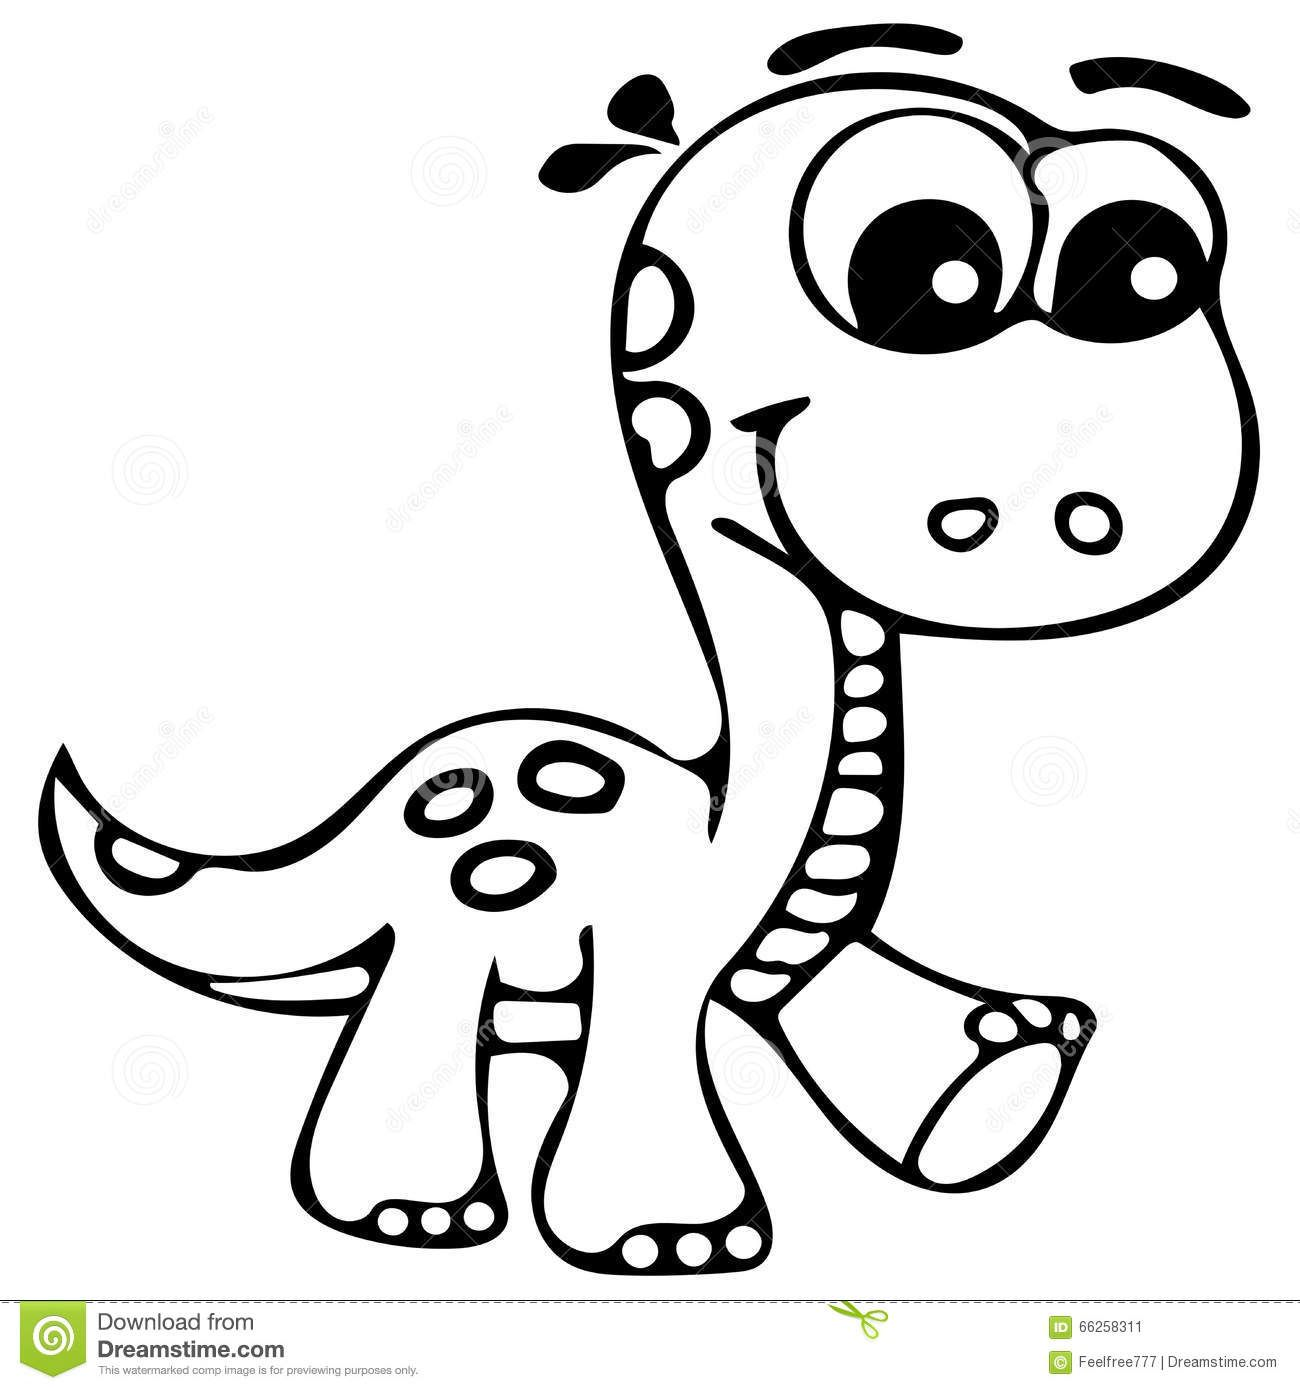 dinosaur color jurassic world dinosaur coloring pages at getcoloringscom dinosaur color